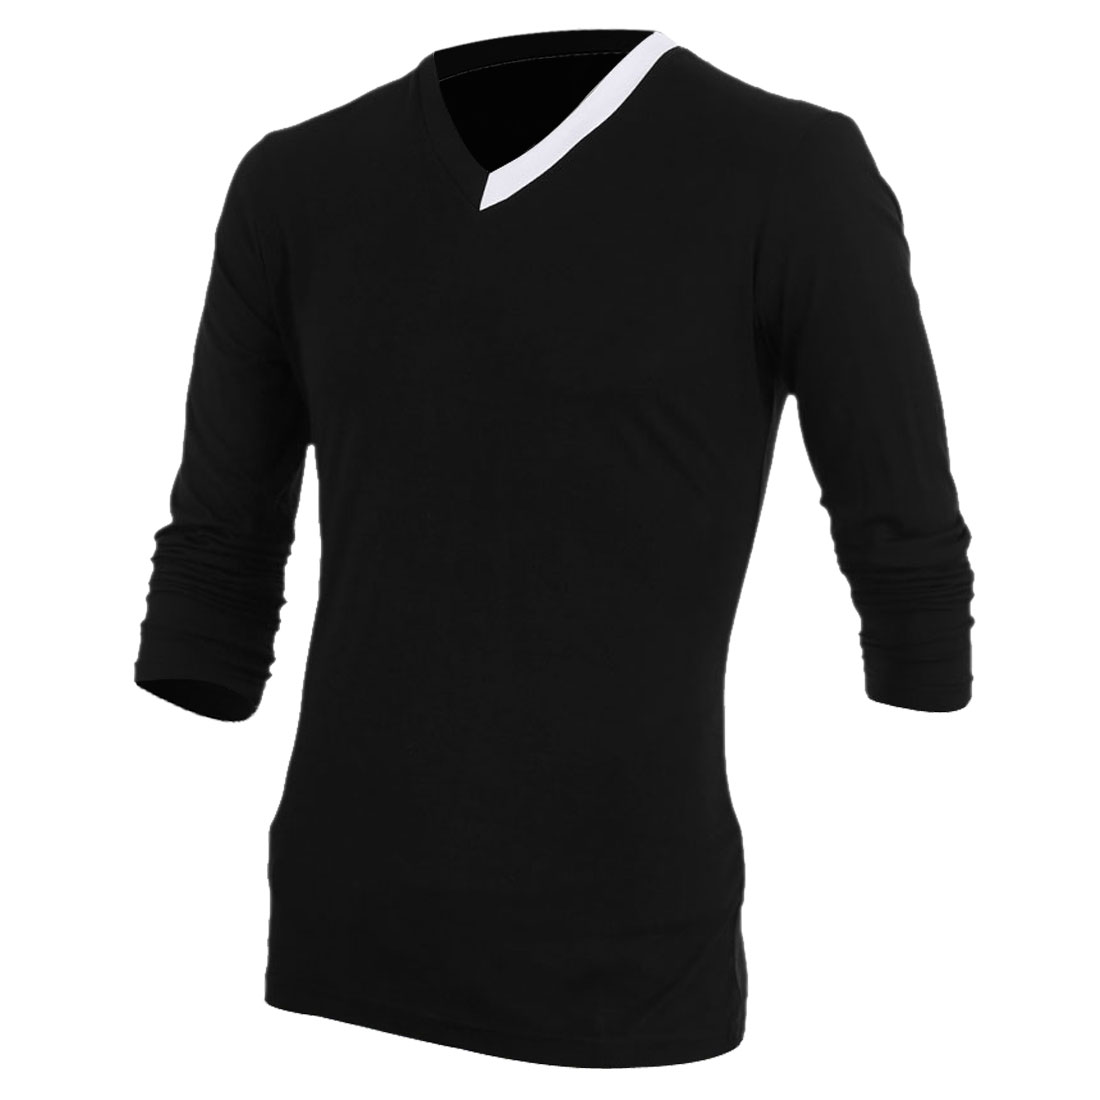 Man Chic Splice Detail V Neck Long Sleeve Black Casual Spring Tops M